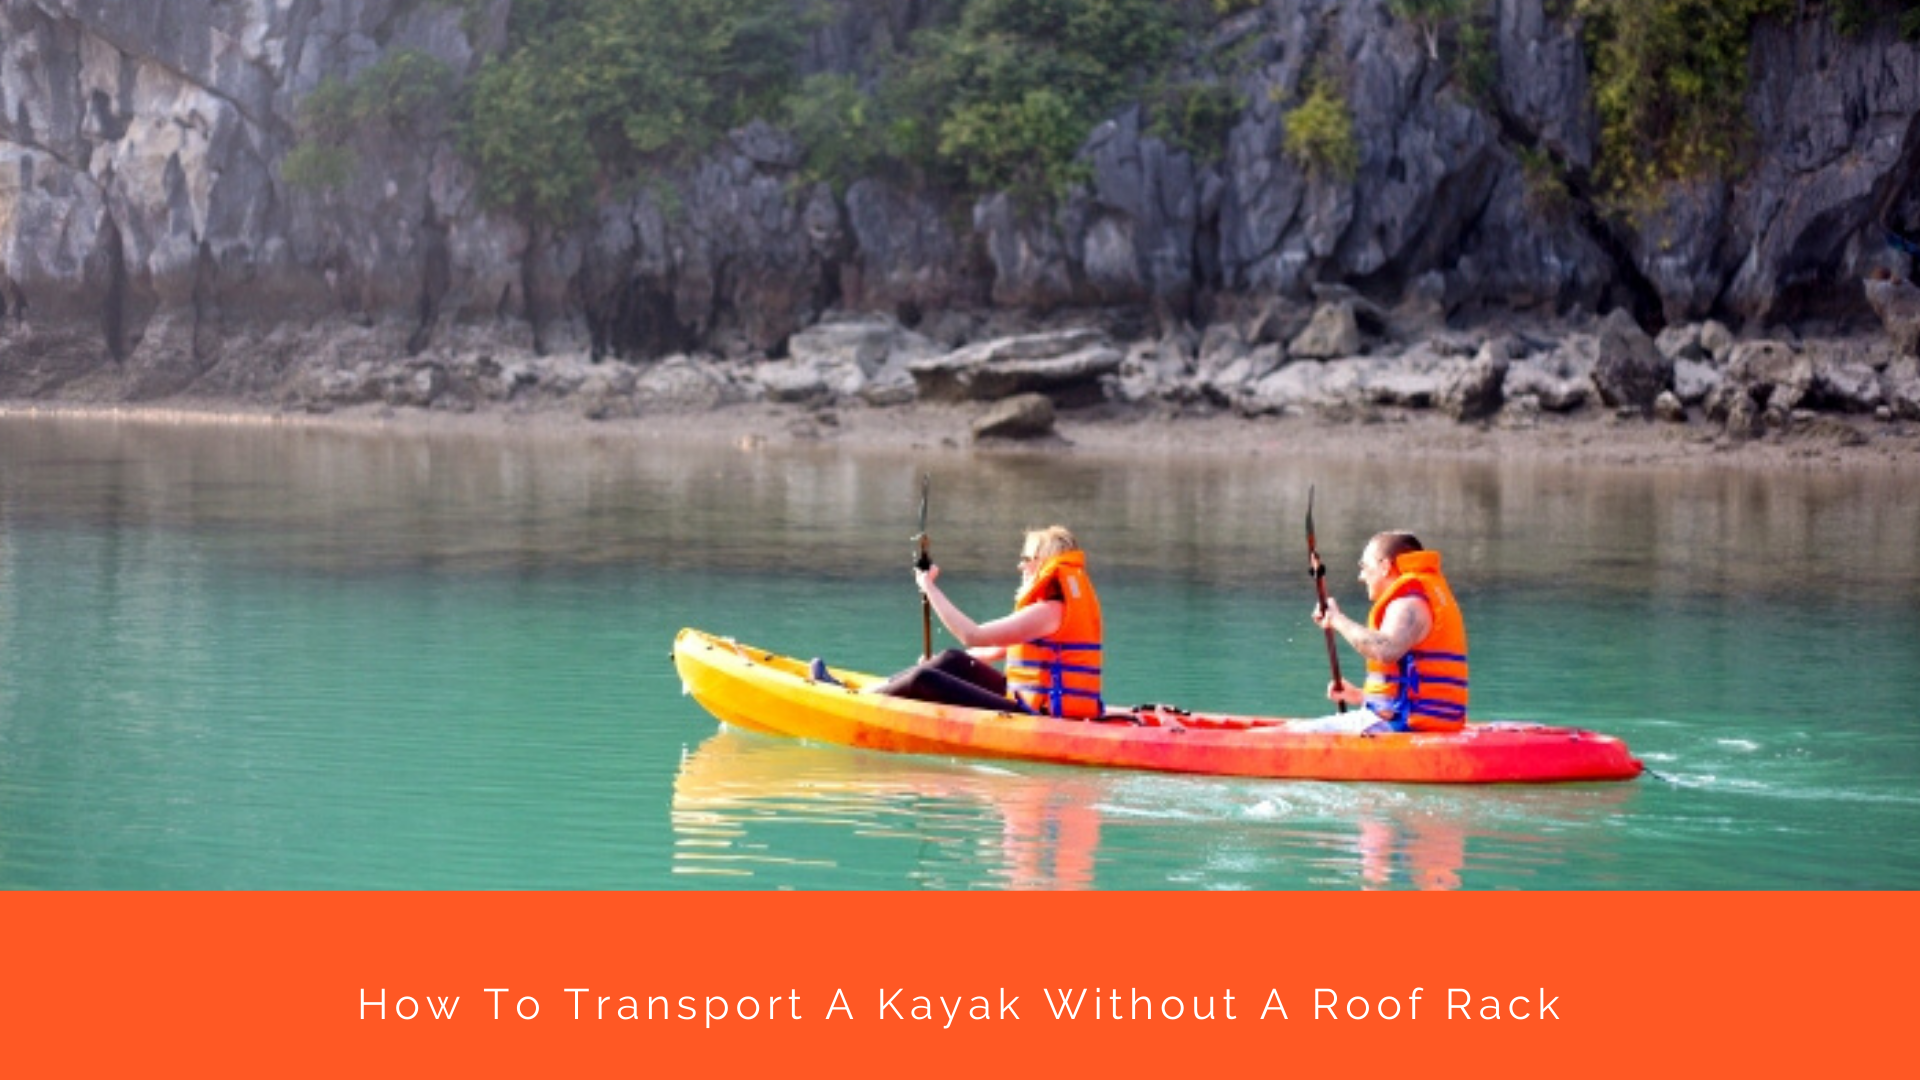 Kayak Without A Roof Rack